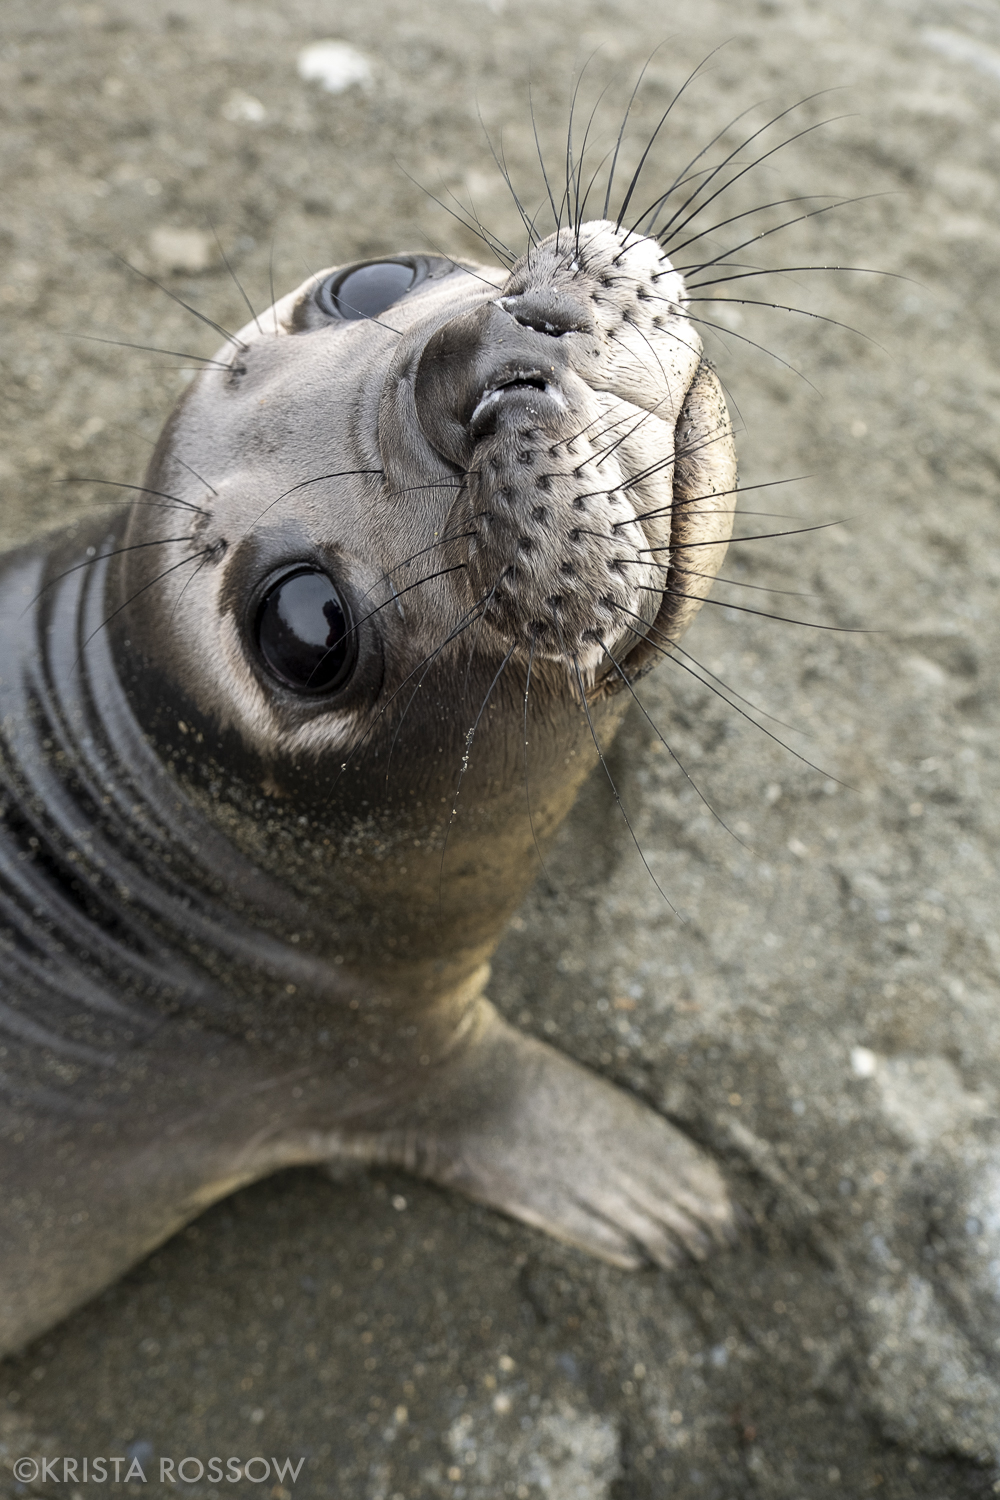 13-Krista-Rossow-baby-animals-elephant-seal-south-georgia